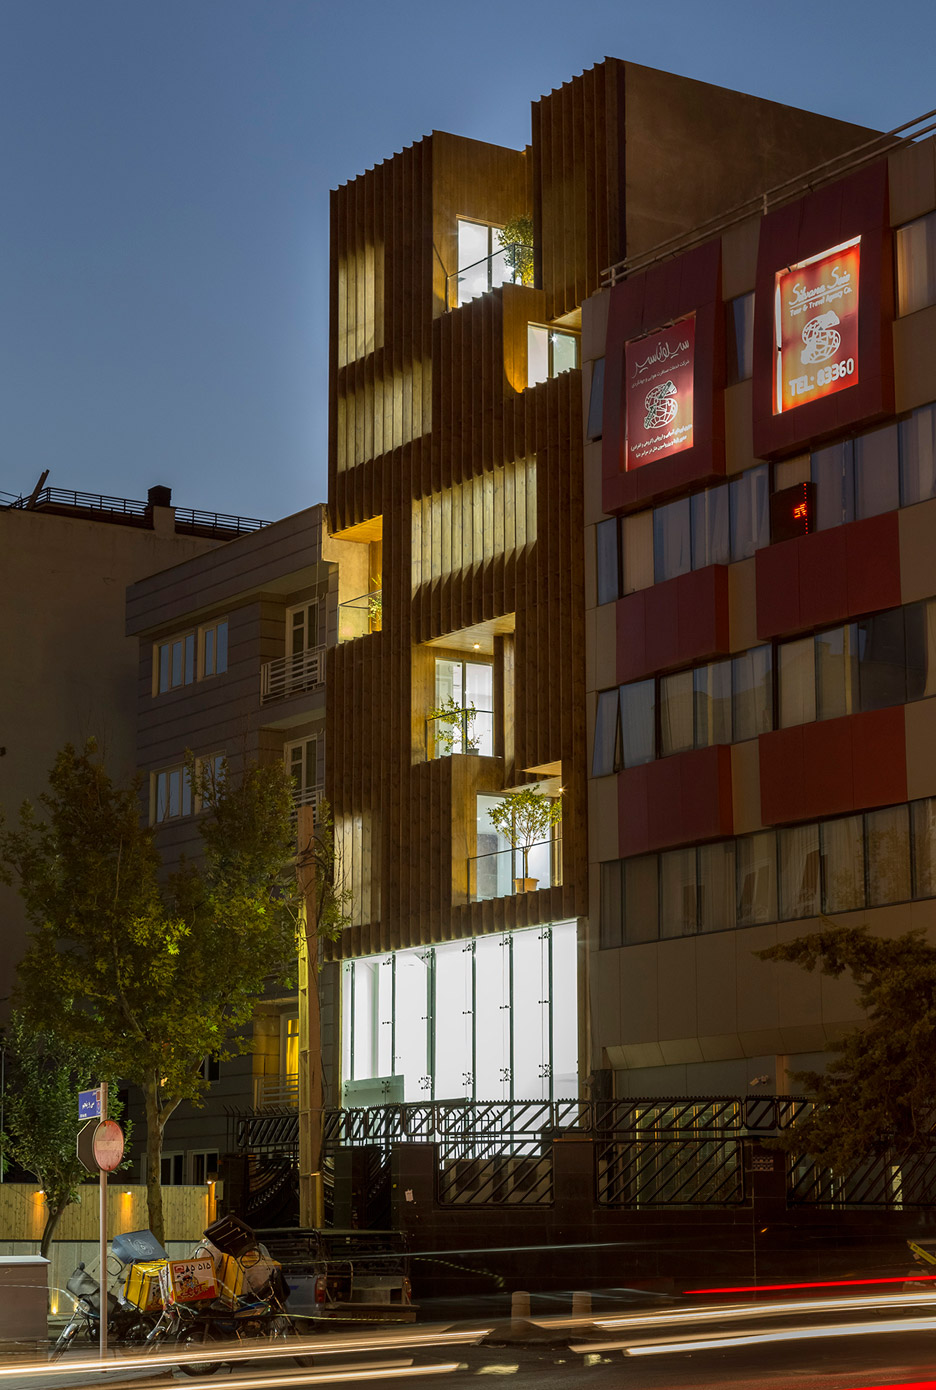 office-block-tehran-lp2-architecture-studio-iran-commercial-facade-connection-relationship-interior-exterior-wood_dezeen_936_10